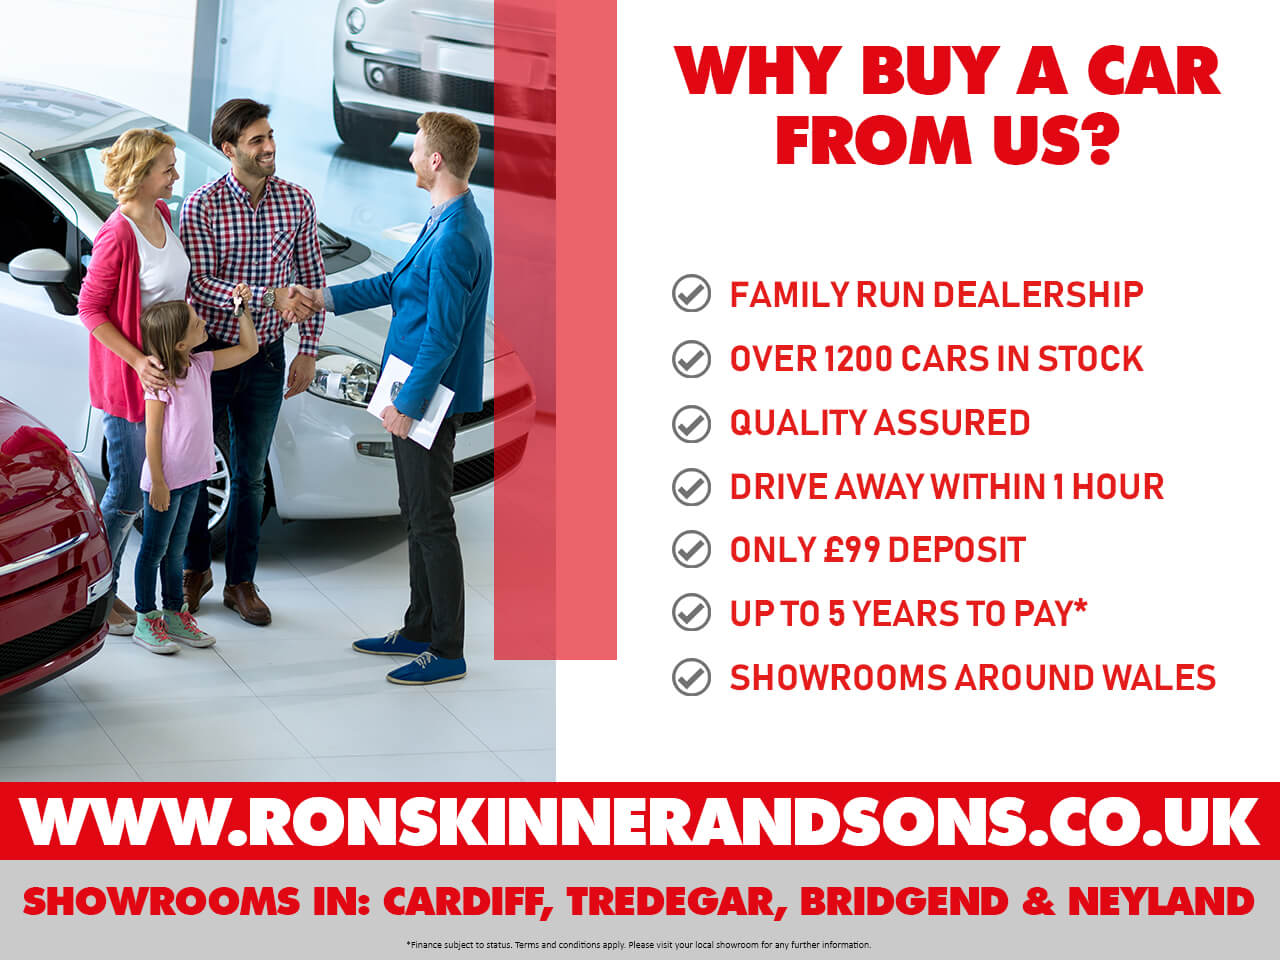 SEAT IBIZA at Ron Skinner and Sons